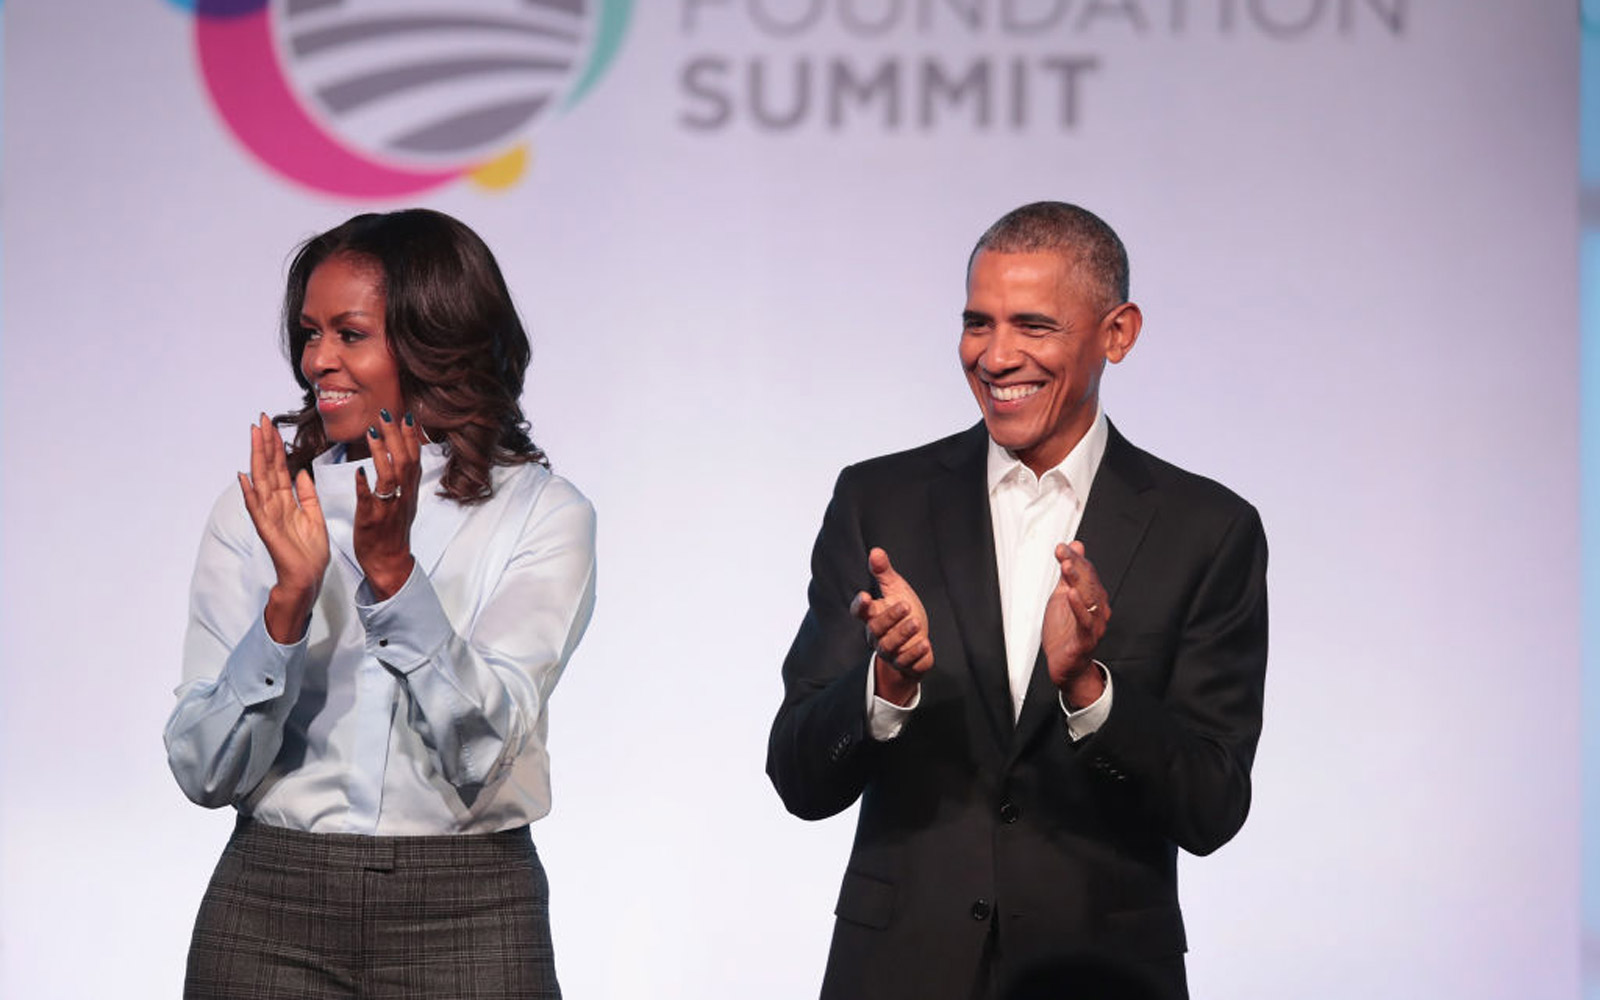 Barack and Michelle Obama Are in Talks to Get Their Own Netflix Show